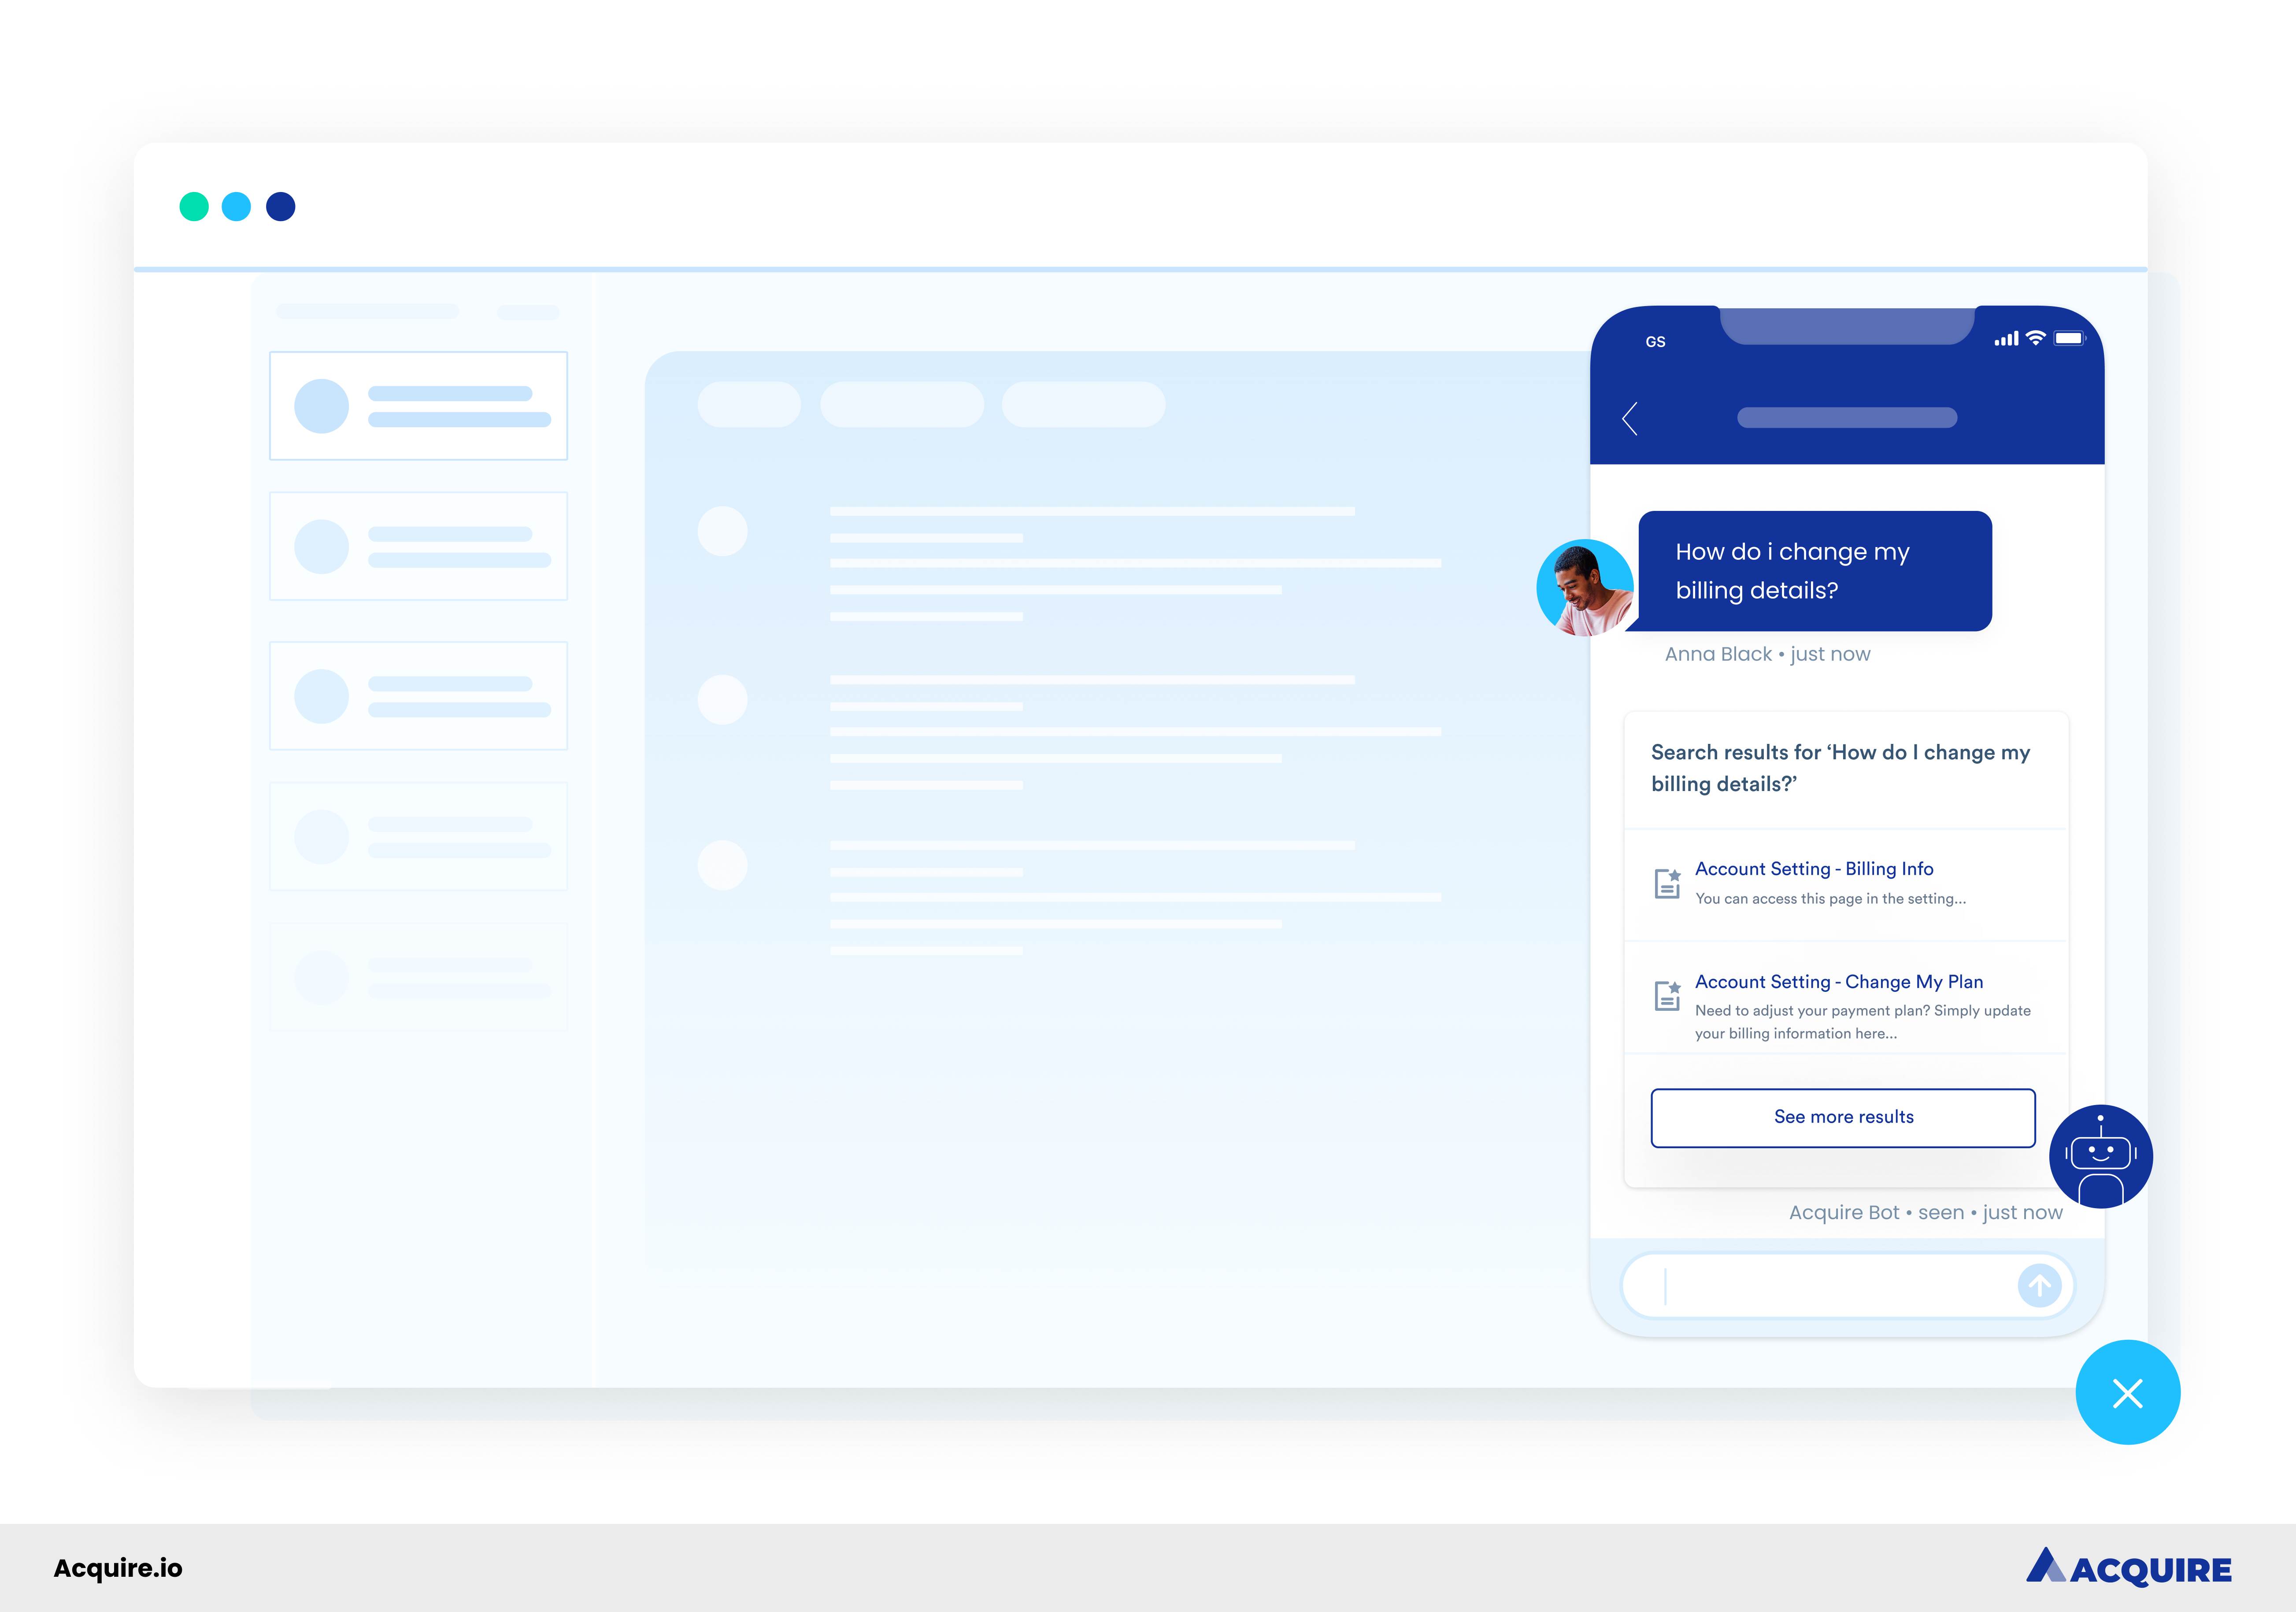 Integrate your help desk articles into AI chat software